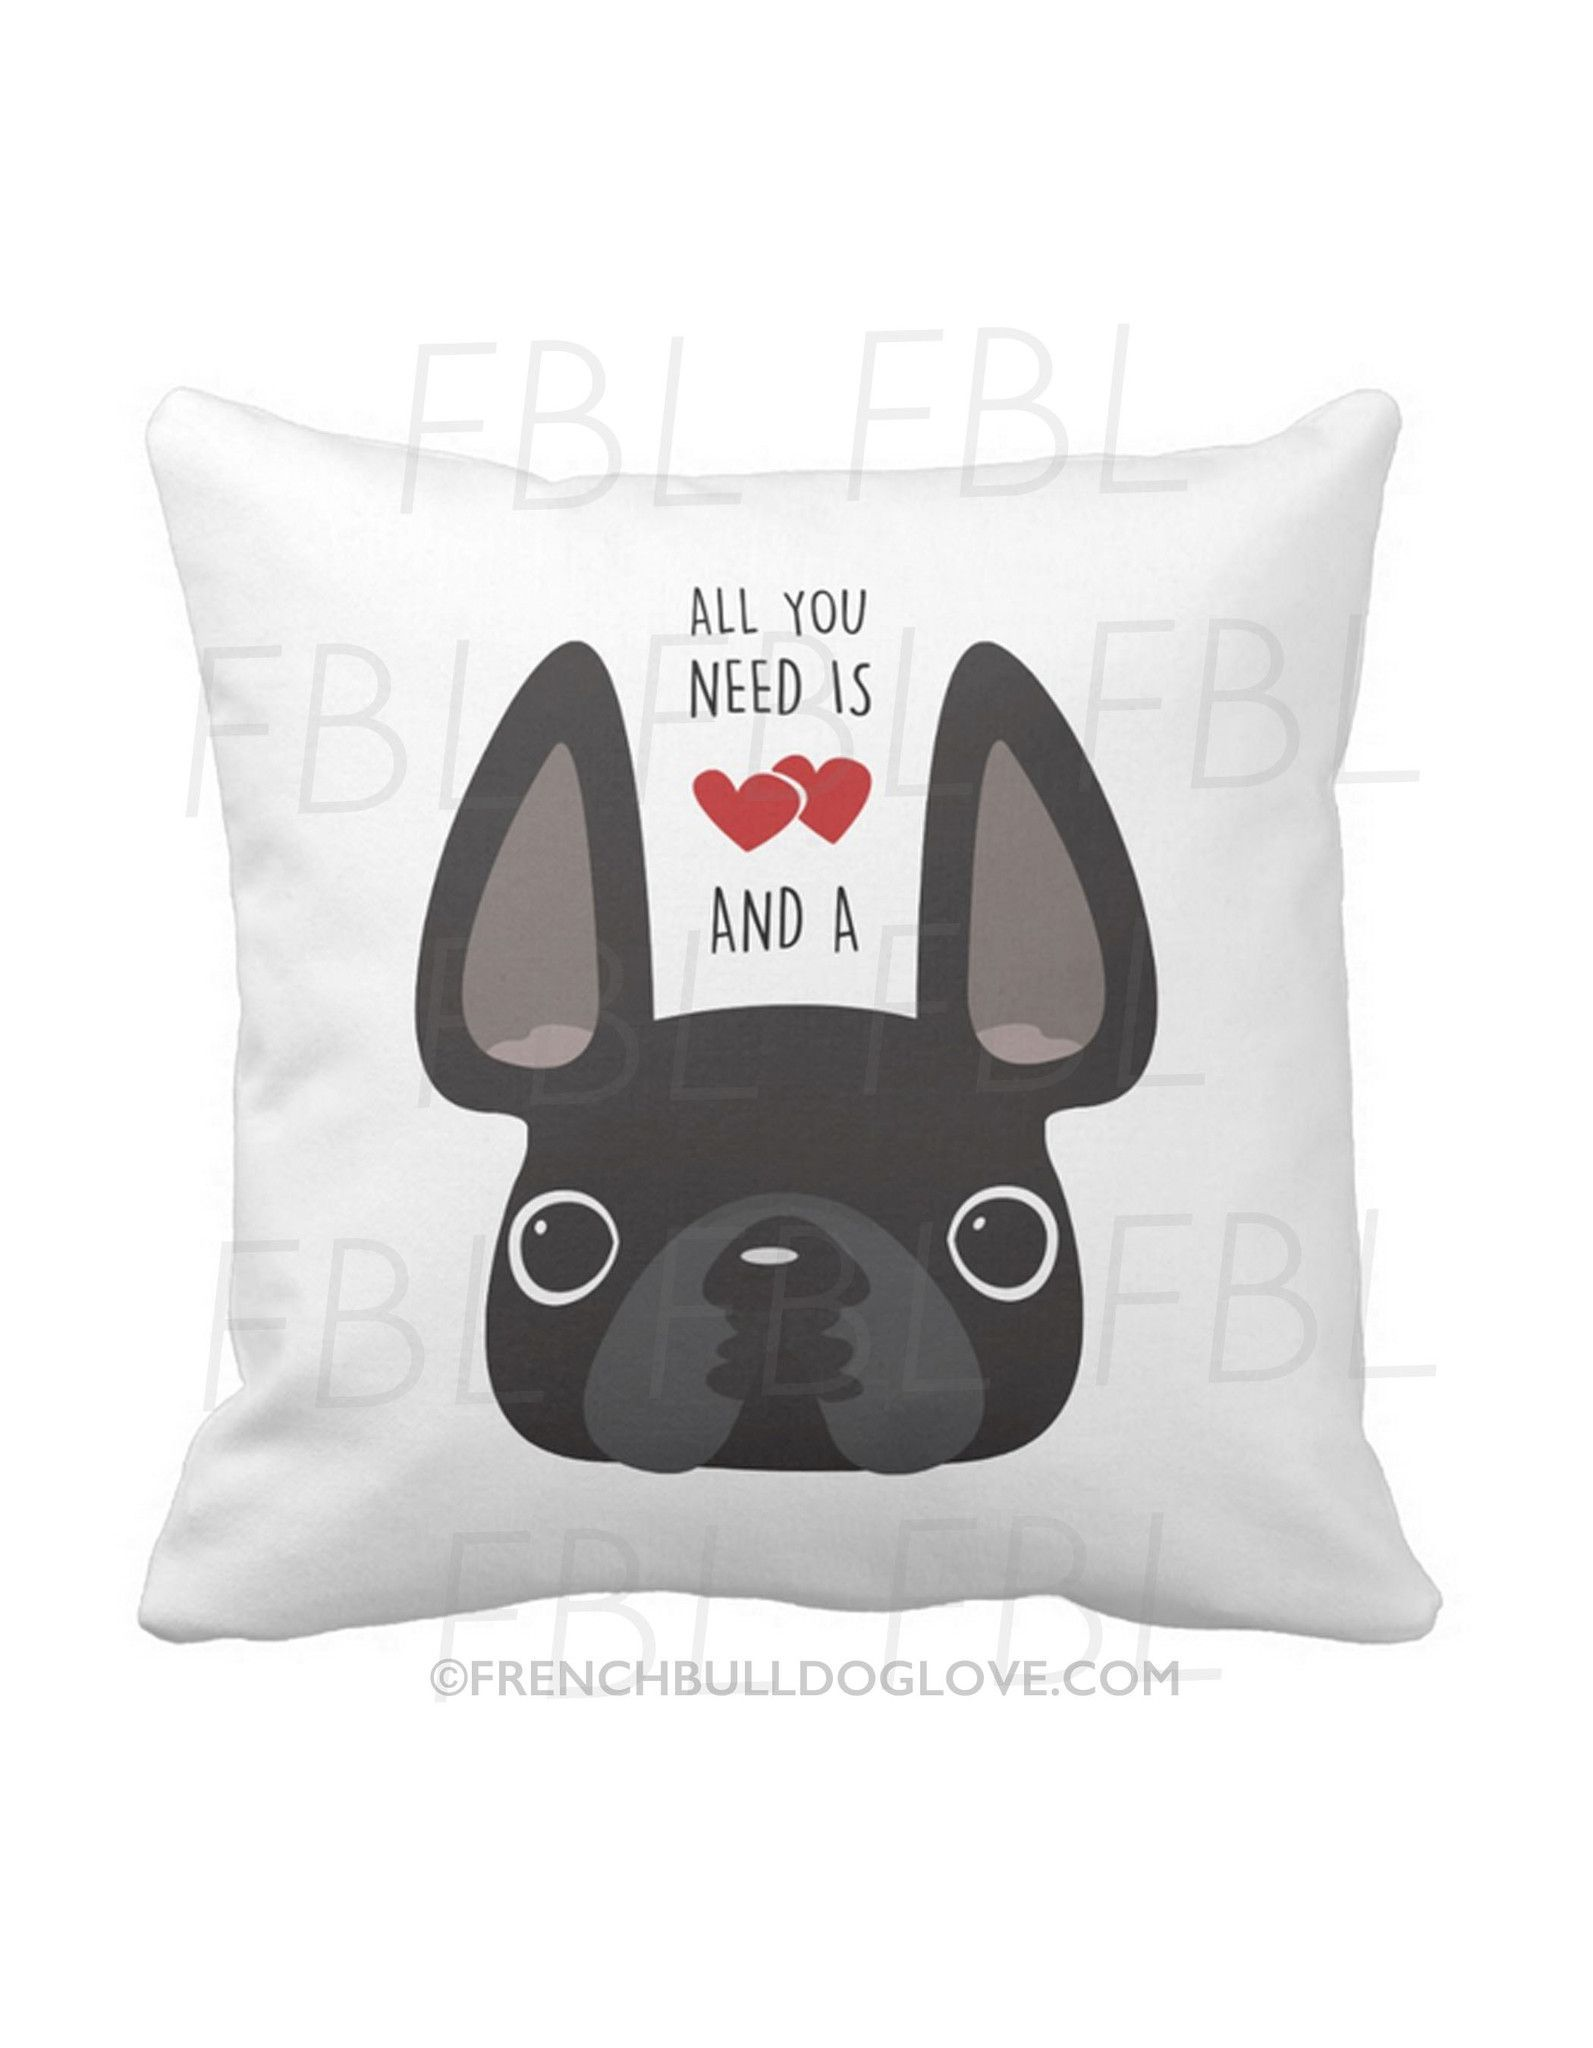 All You Need is Love & a Frenchie Pillow / Black | Products | Pinterest